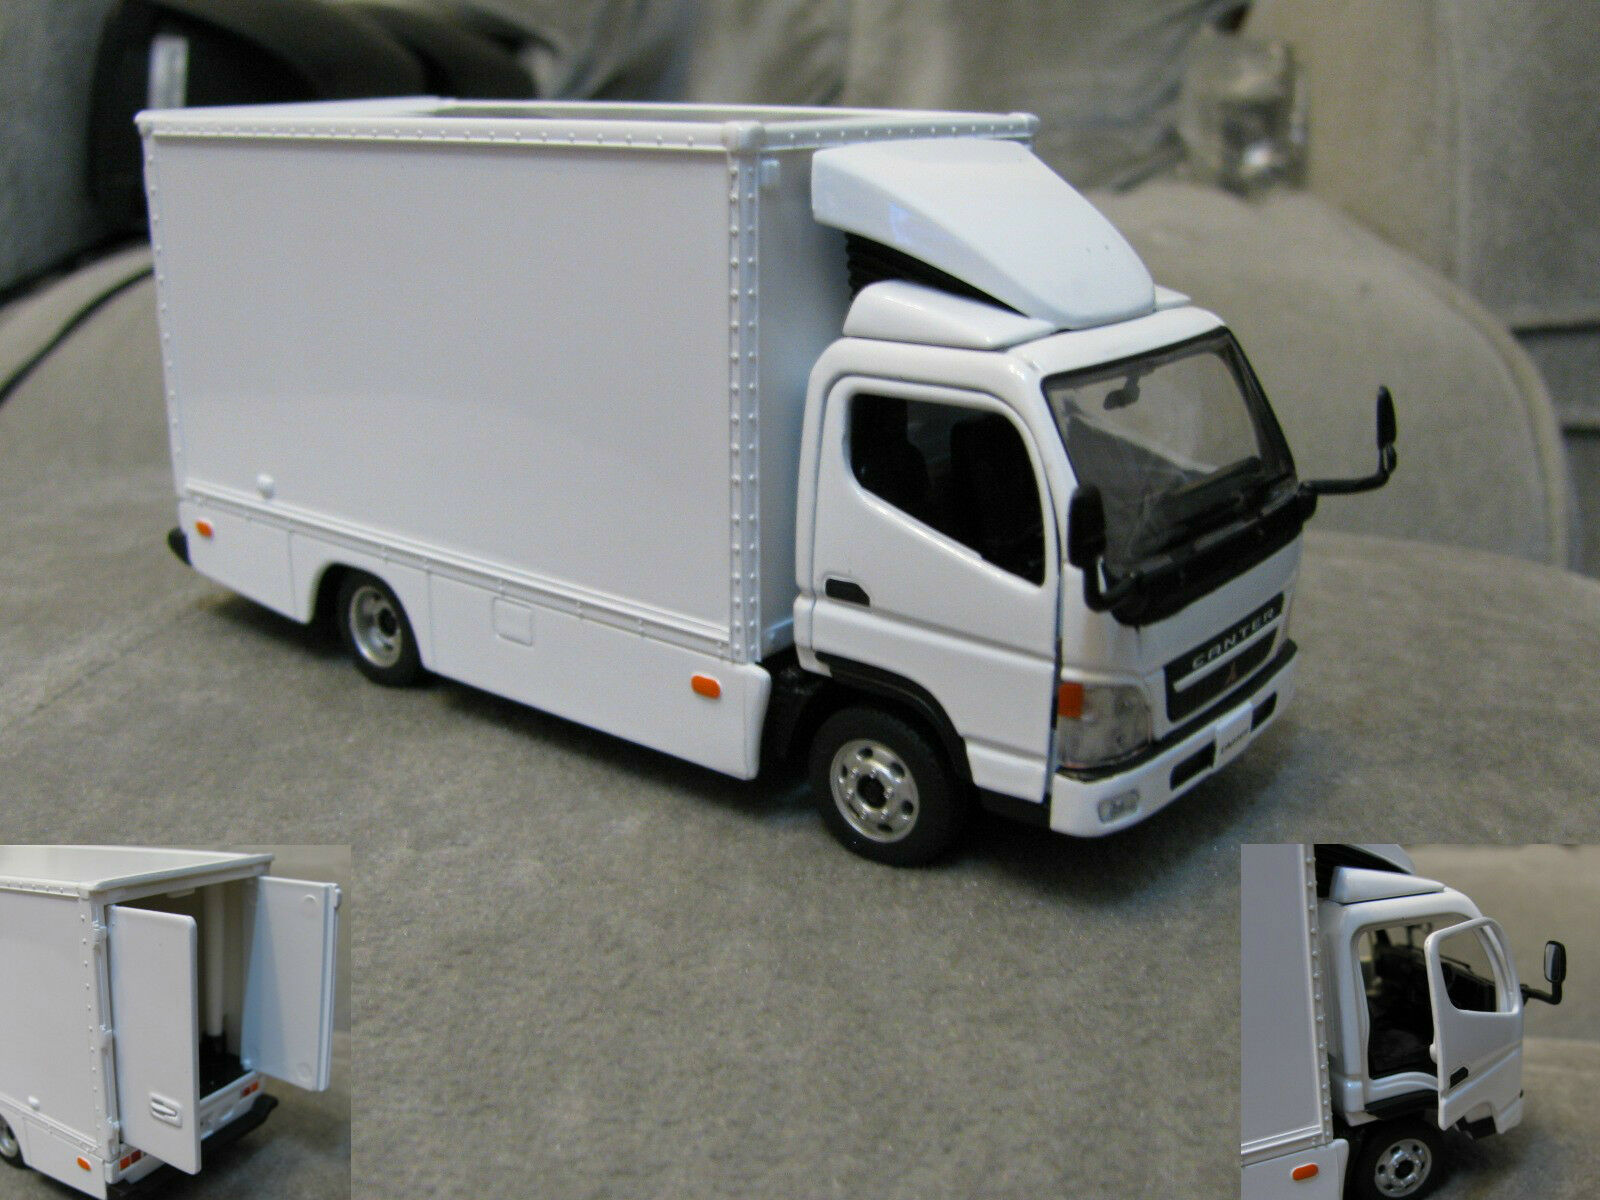 1 43 Mitsubishi Canter Light Duty Truck diecast